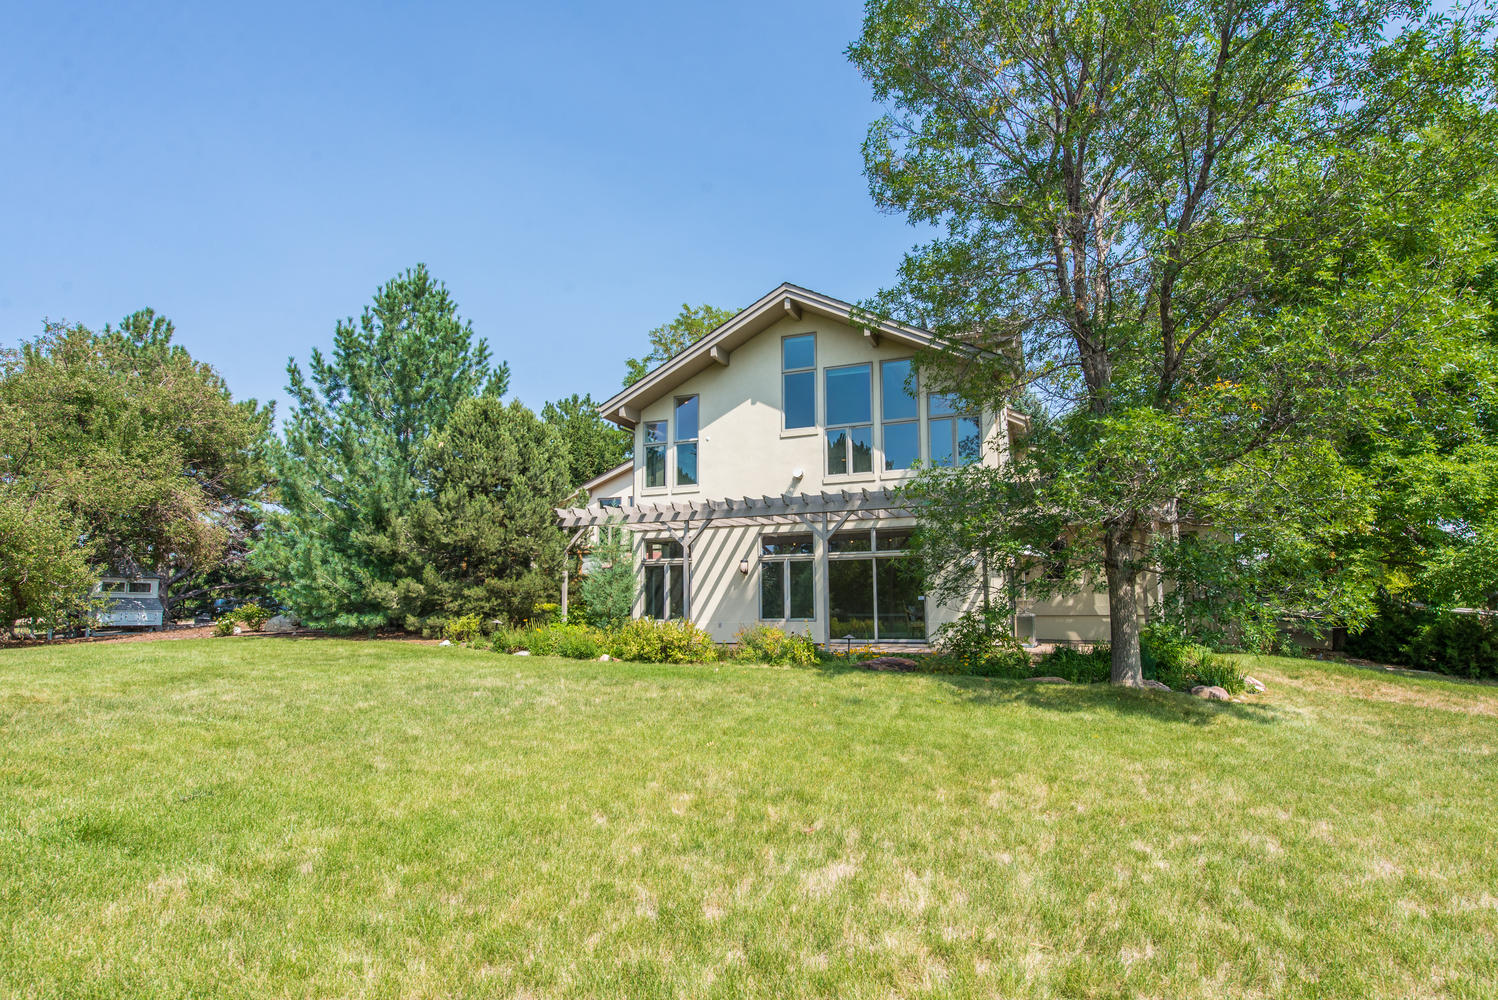 5705 S Monaco St, Greenwood Village, CO 80111